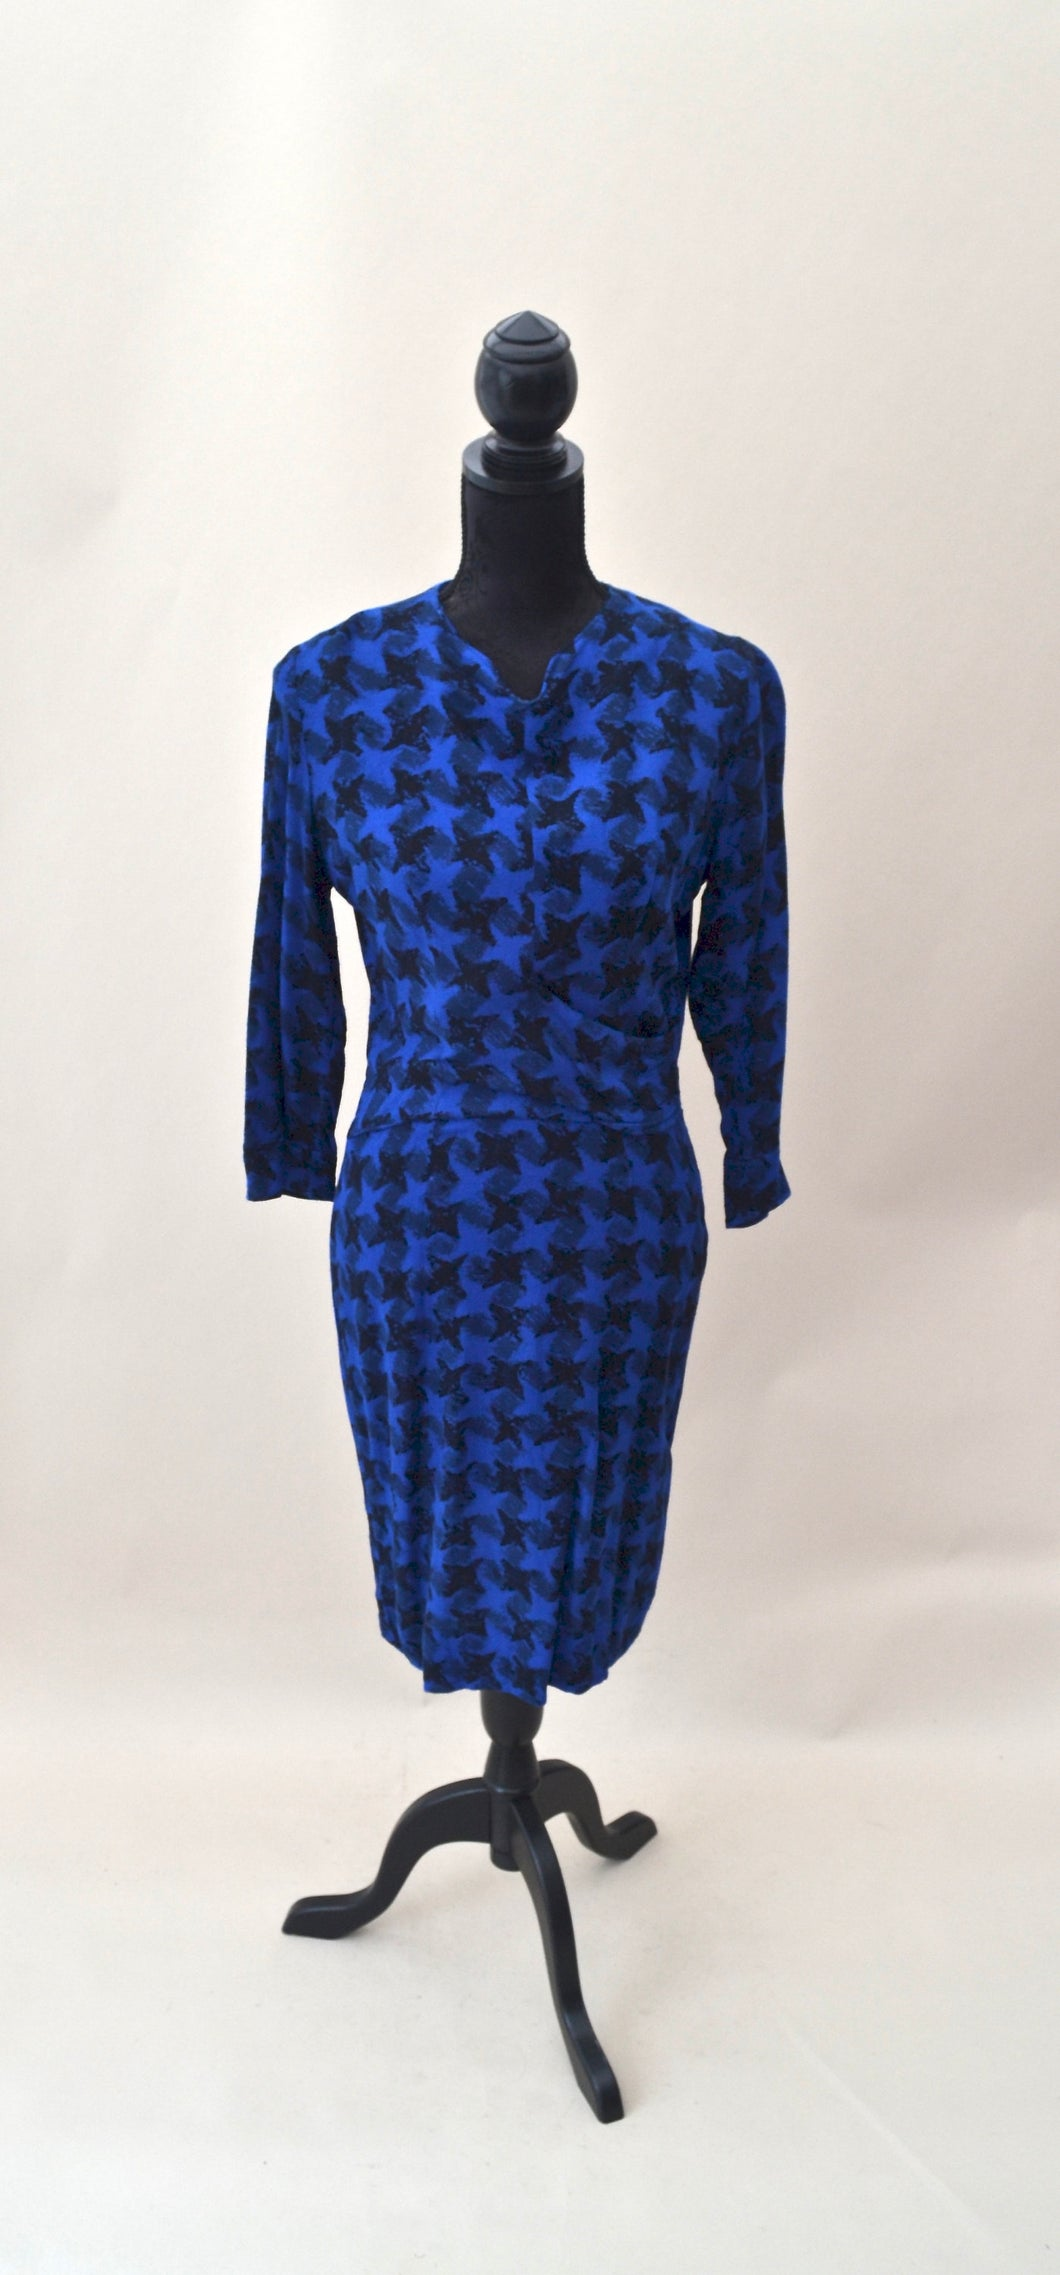 1950s handmade wiggle dress with dogtooth style pattern. Blue & black. Est UK size 10